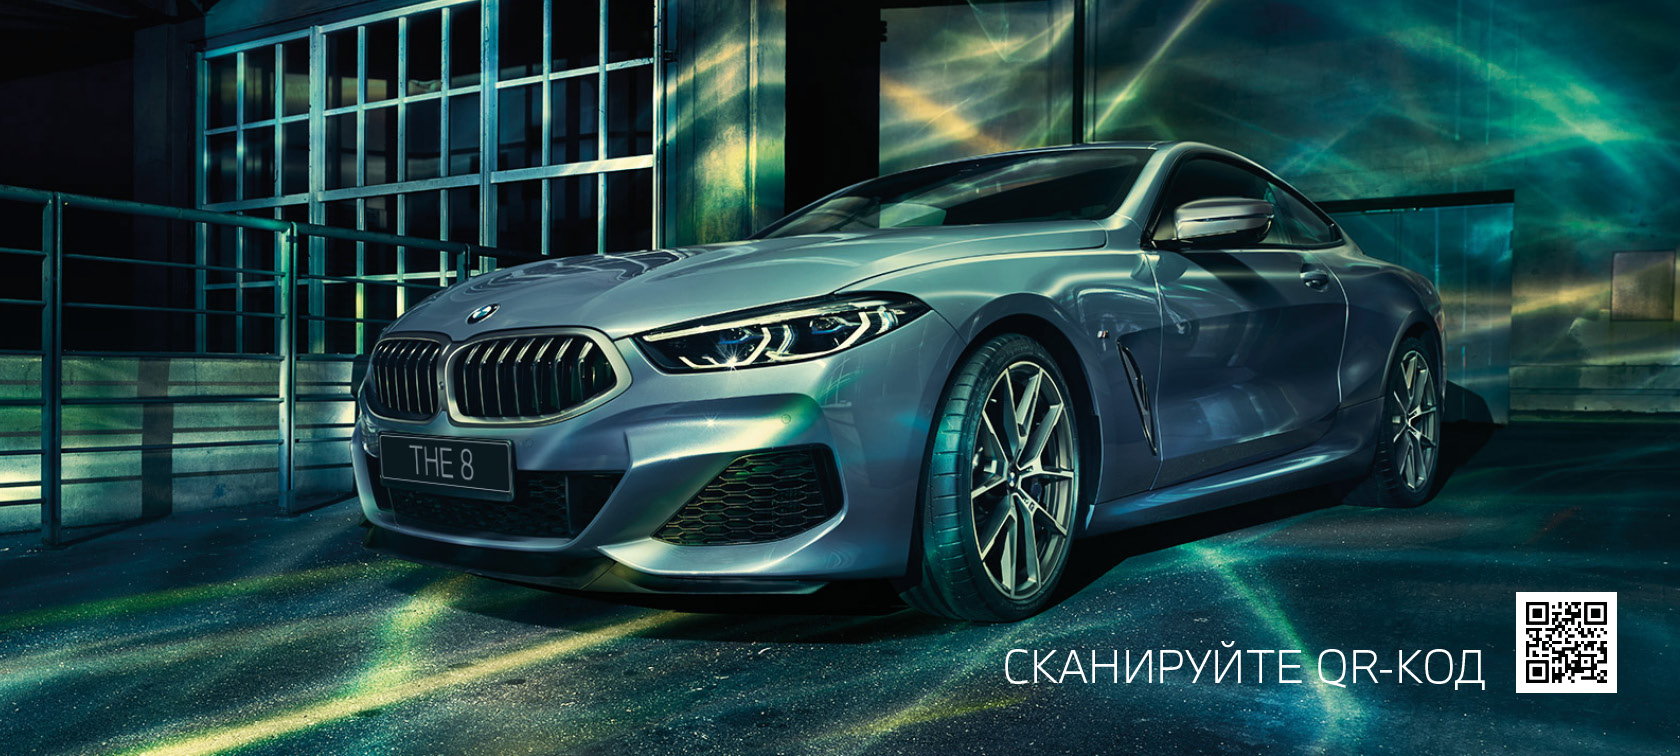 THE BMW 8 серия Coupe